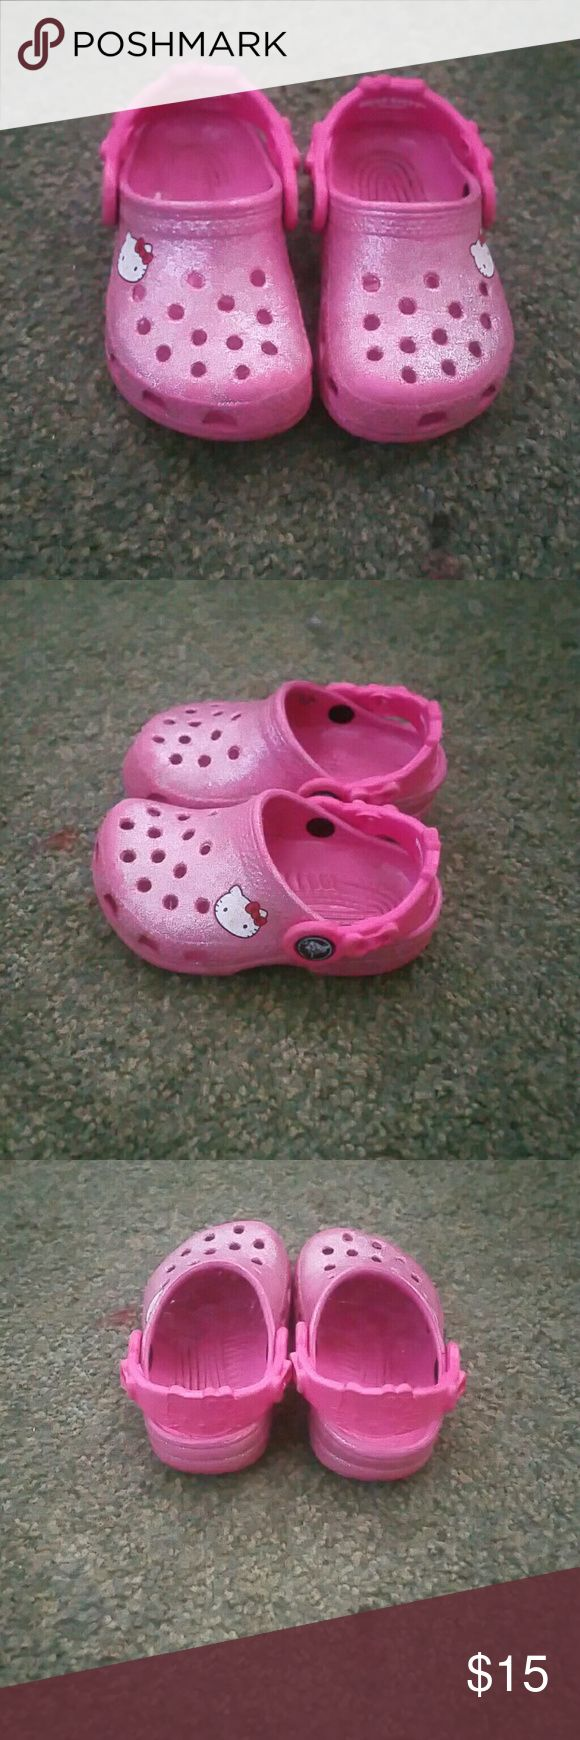 Crocs Hello Kitty crocs in great condition! Shoes Sandals & Flip Flops